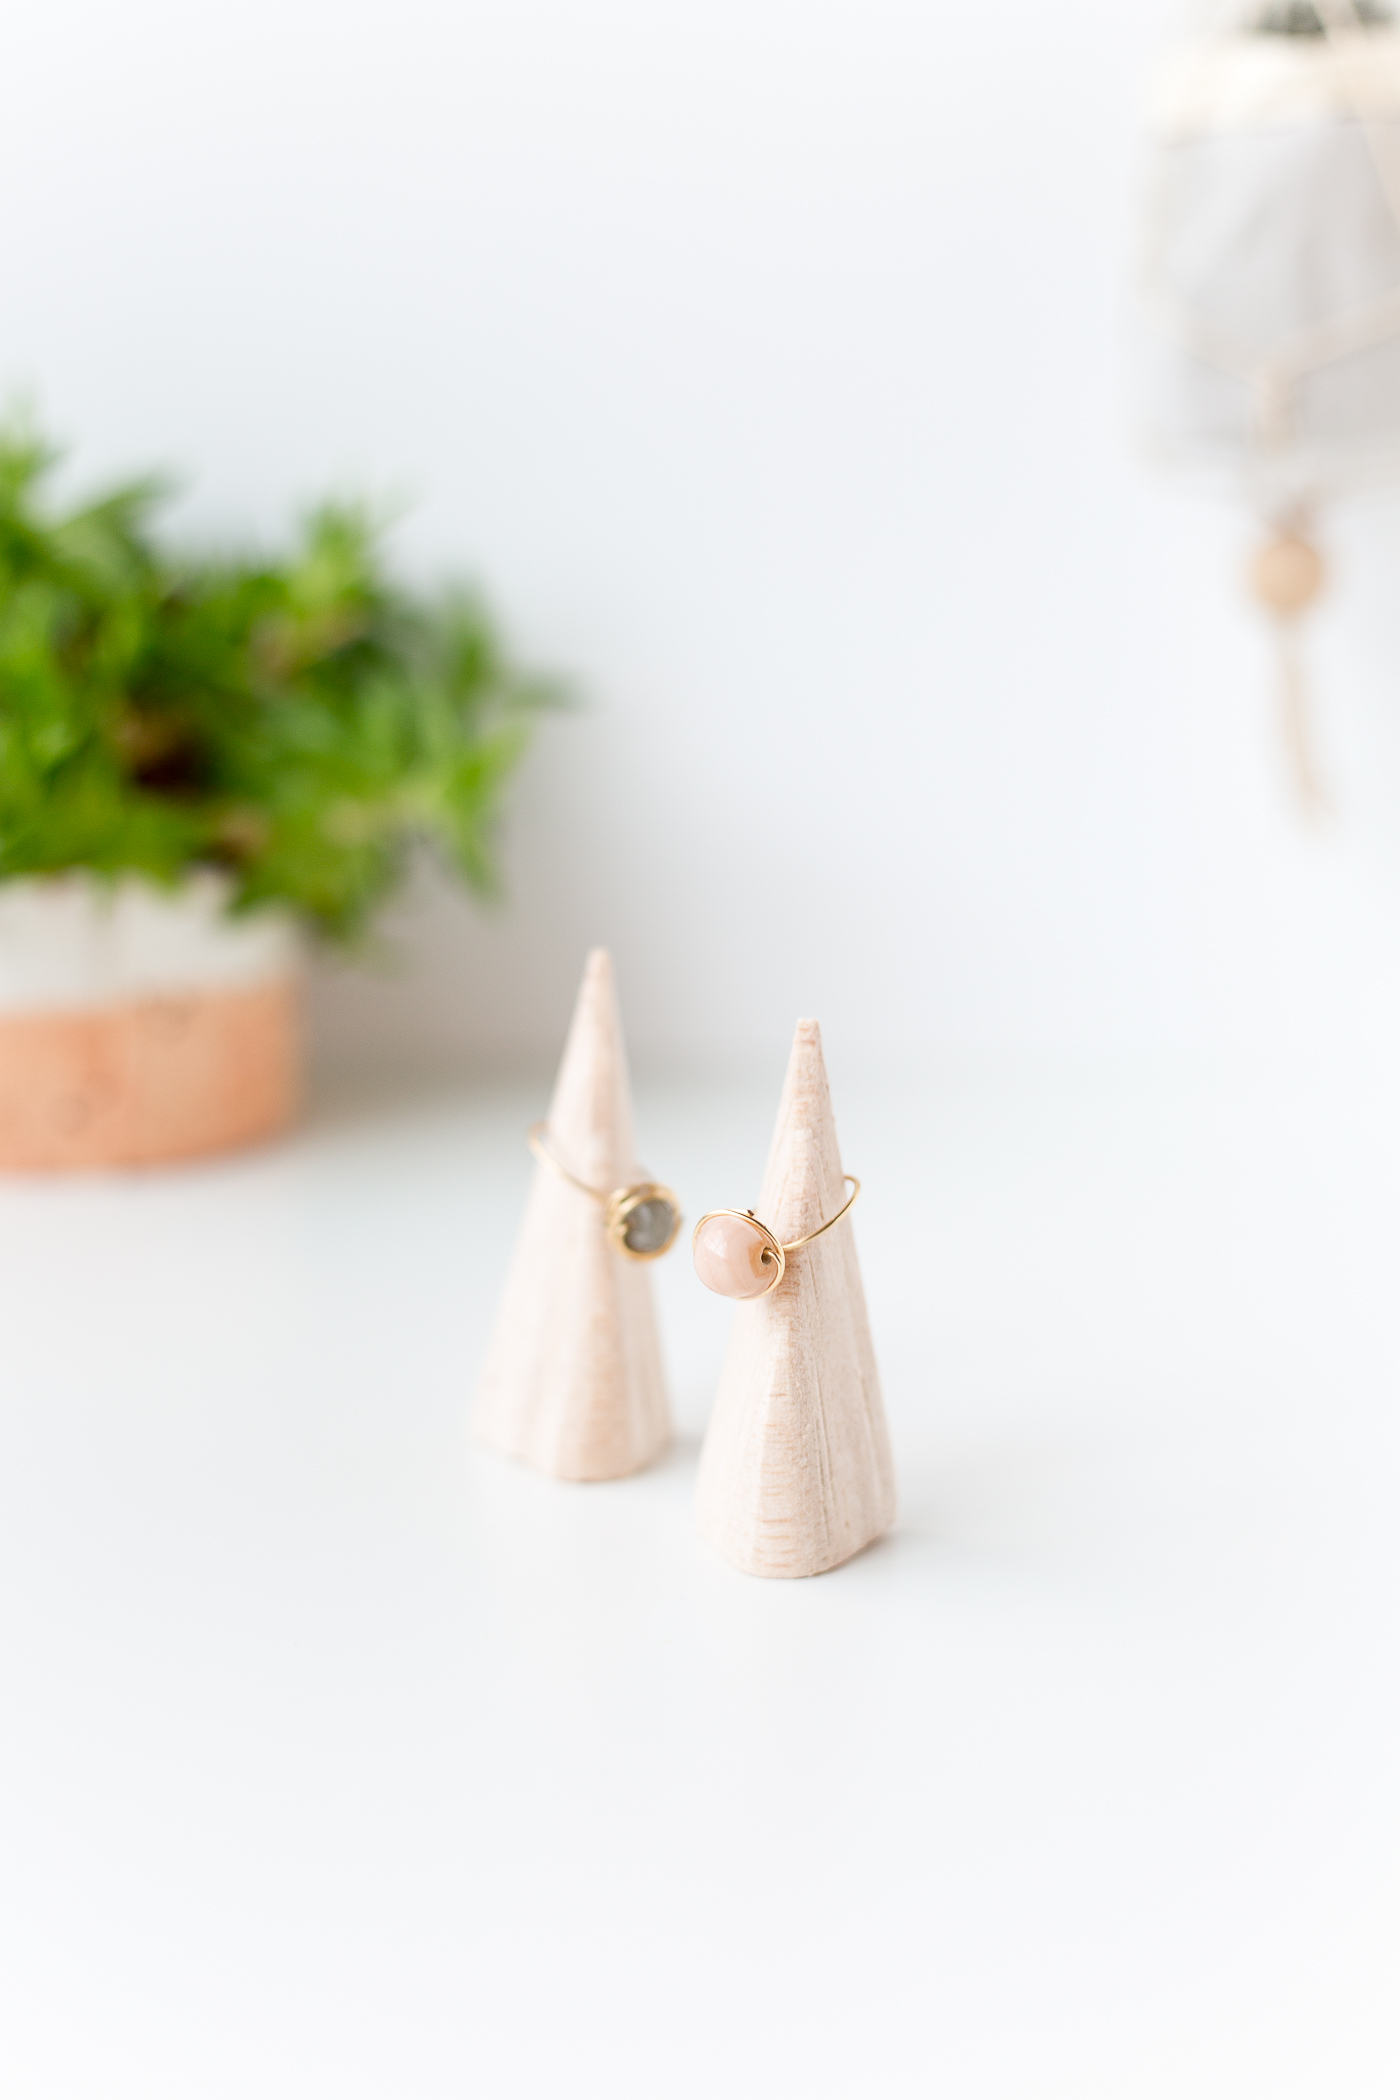 DIY Balsa Wood Ring Holders | @fallfordiy